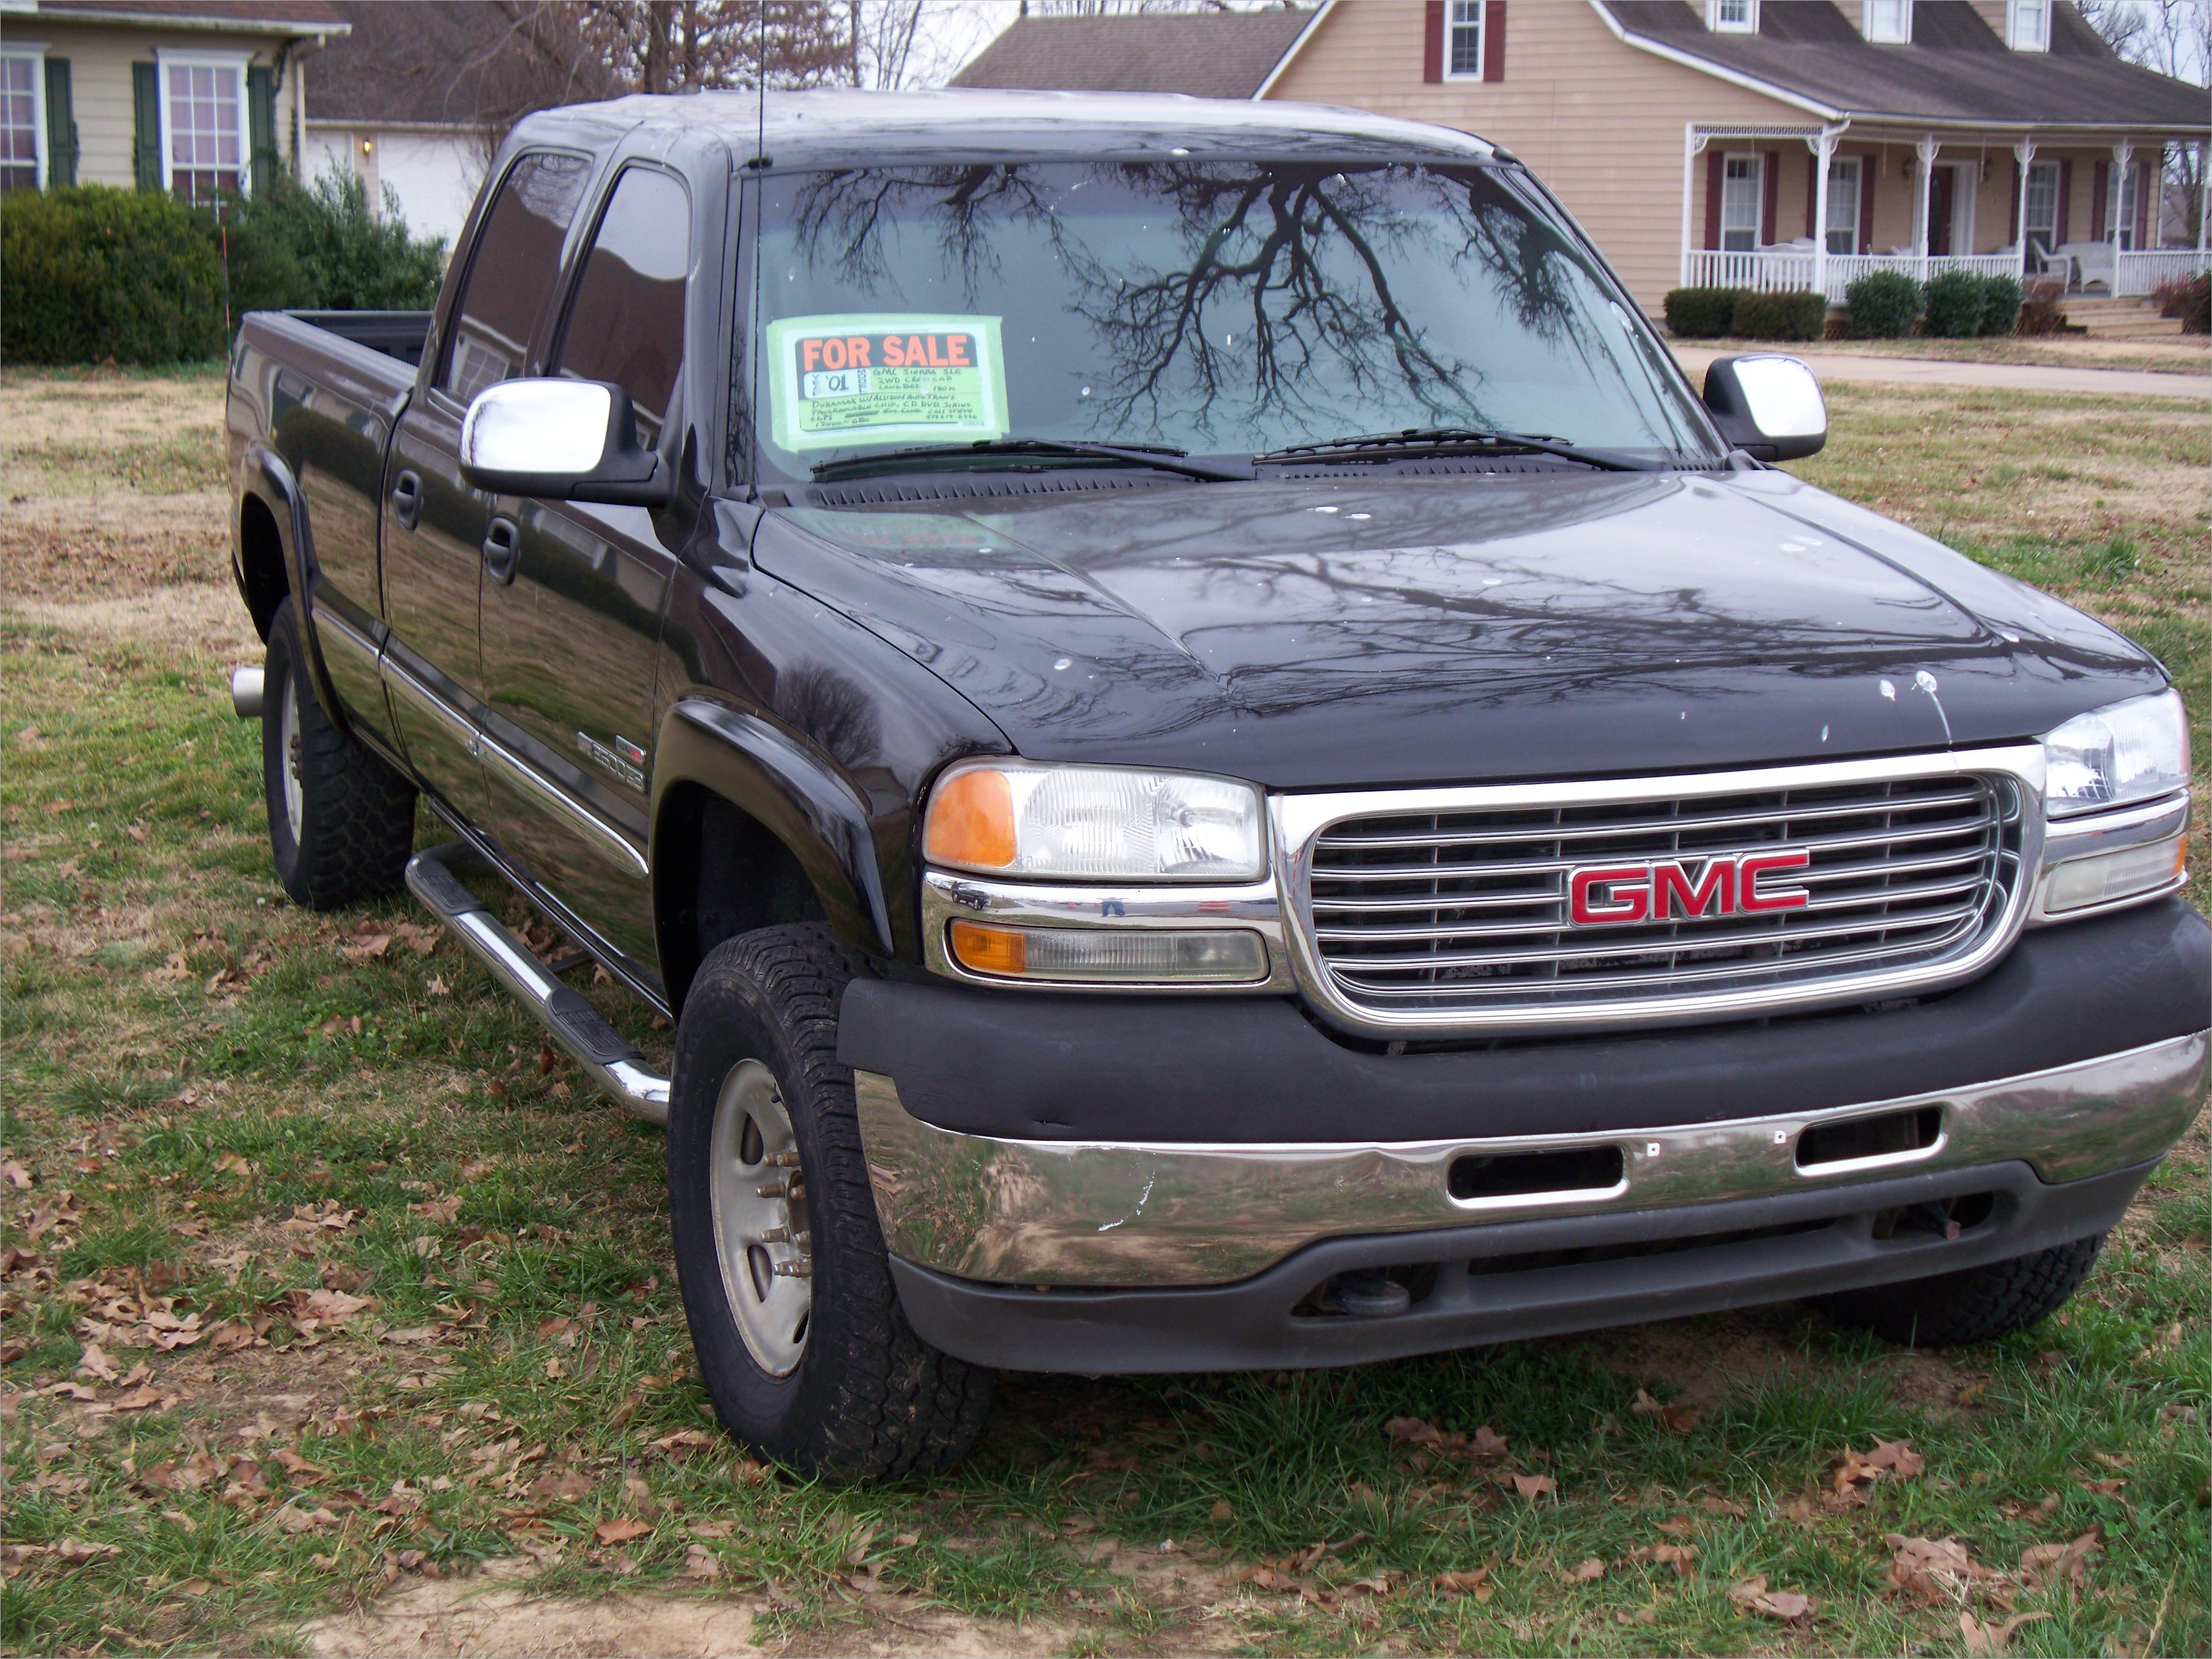 Luxury Cheap Vehicles For Sale Near Me Auto Racing Legends